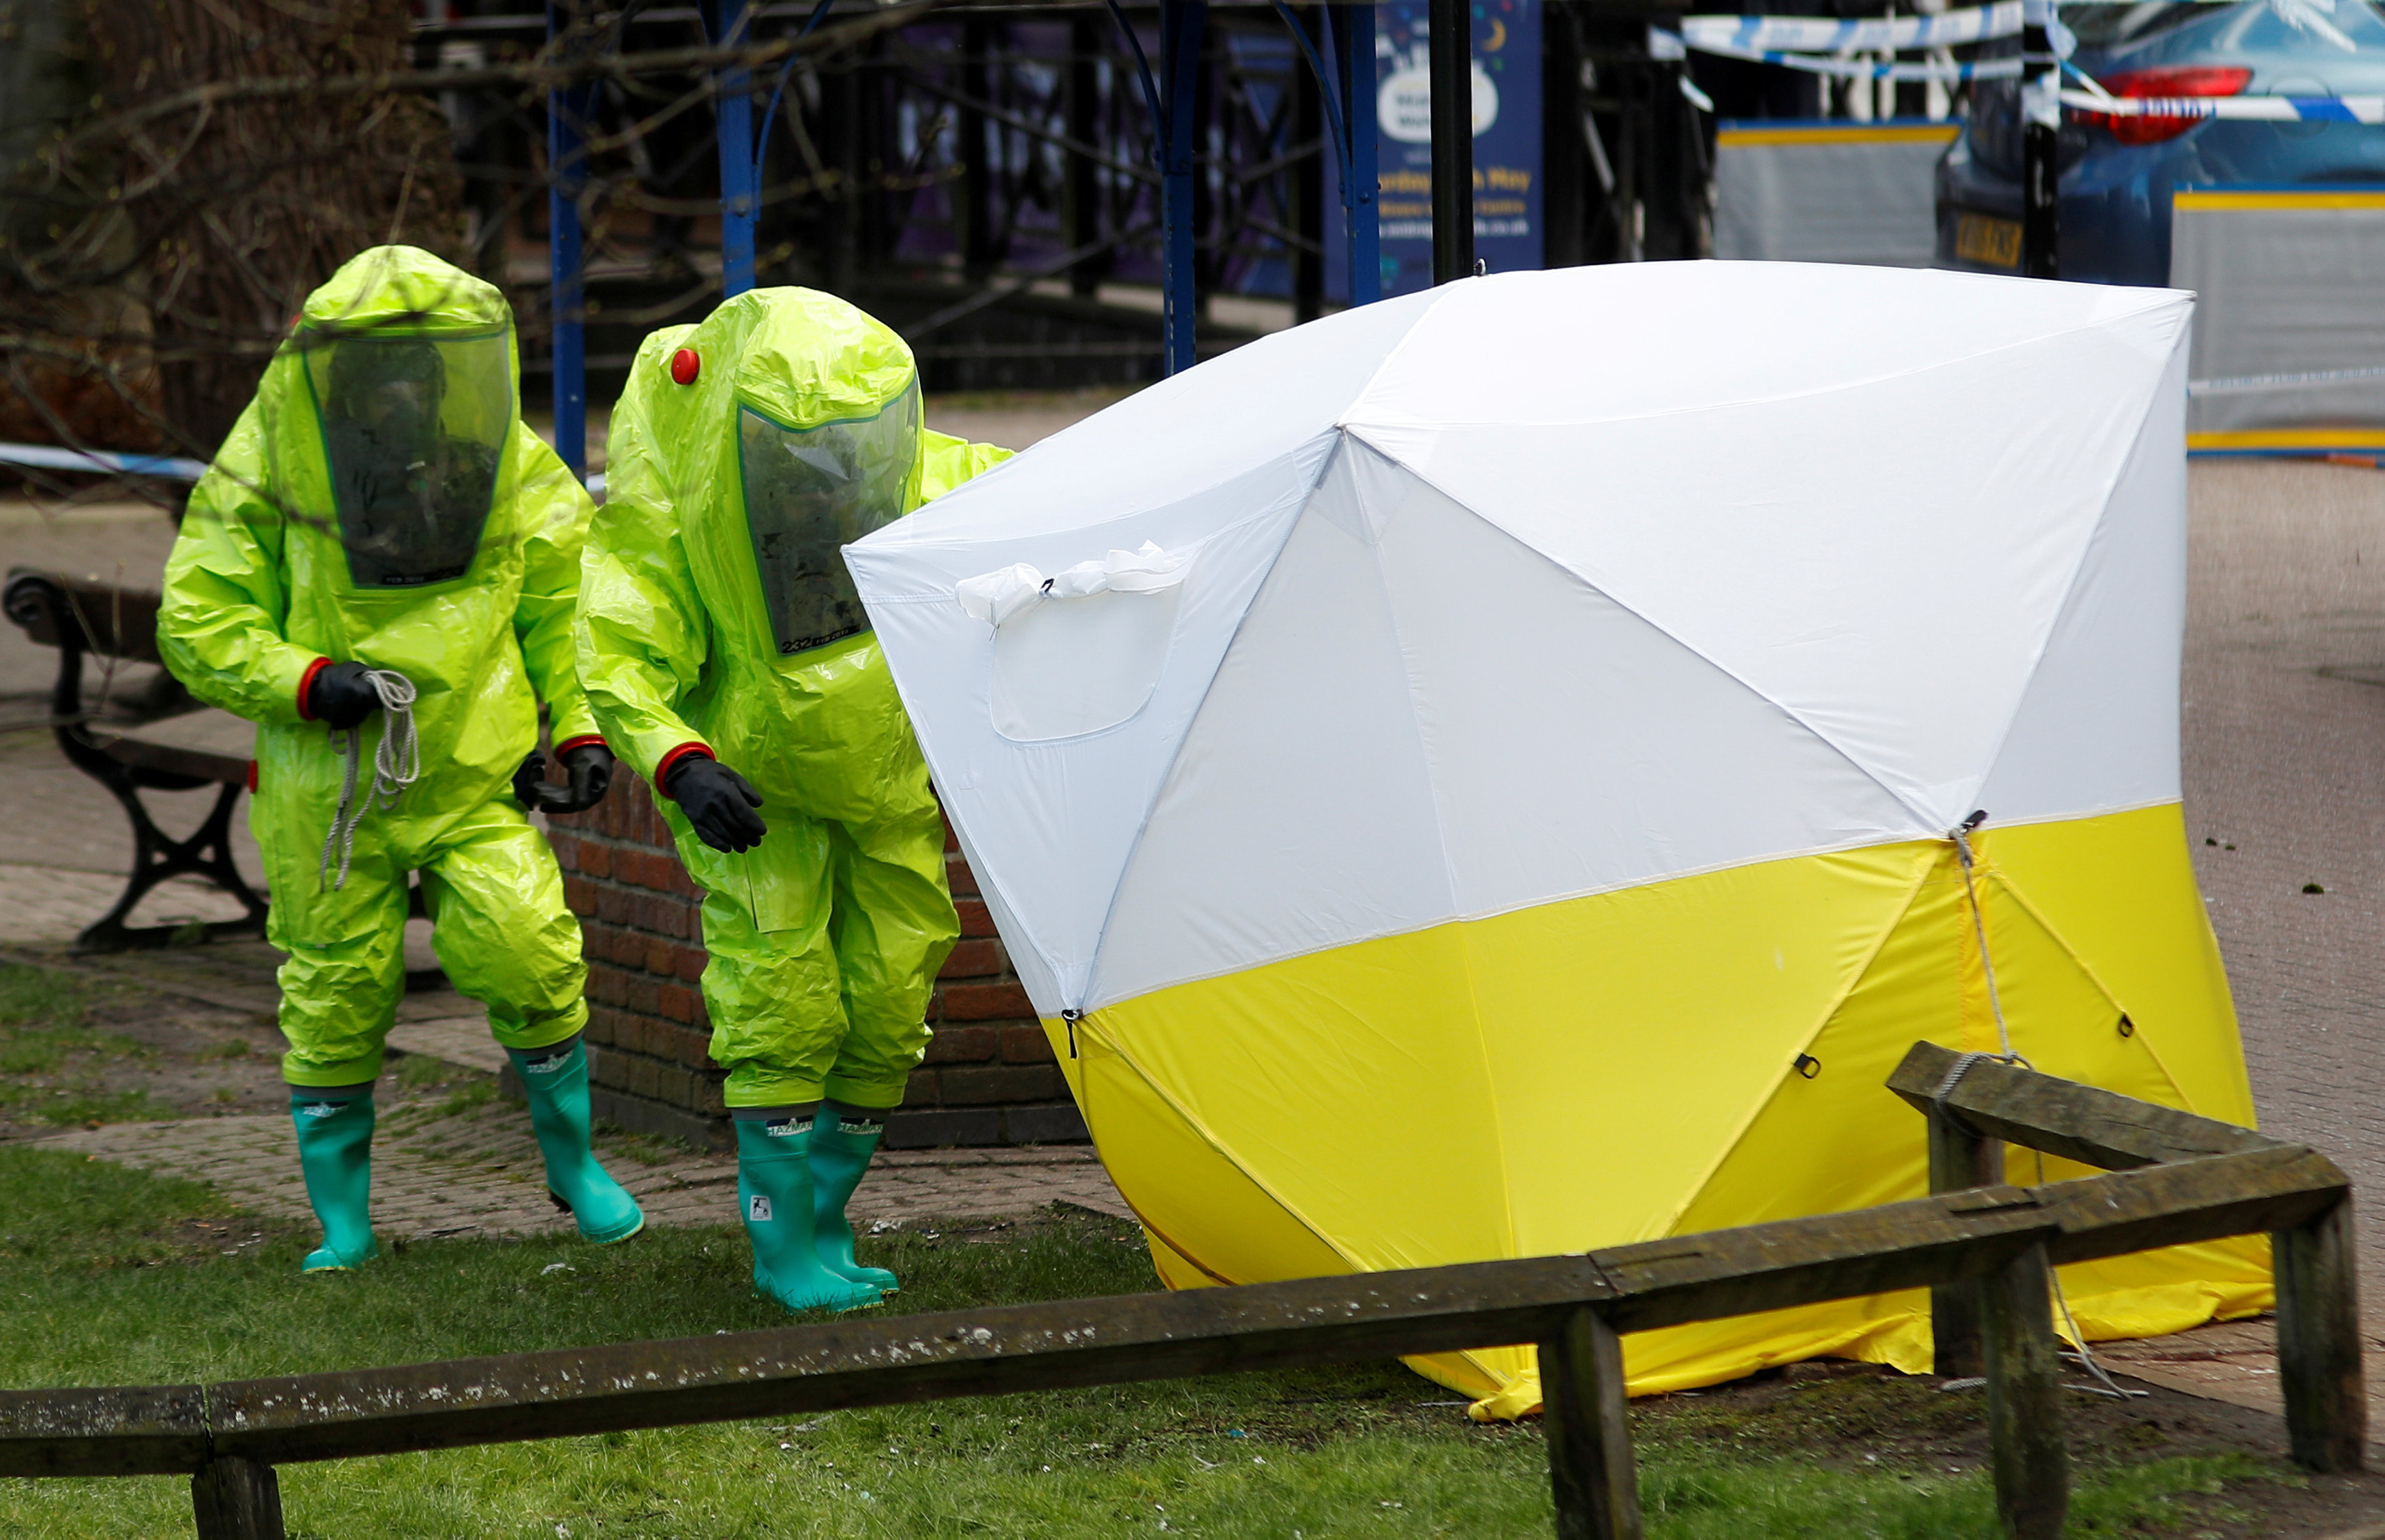 FILE PHOTO: The forensic tent, covering the bench where Sergei Skripal and his daughter Yulia were found, is repositioned by officials in protective suits in the centre of Salisbury, Britain, March 8, 2018. REUTERS/Peter Nicholls/File Photo